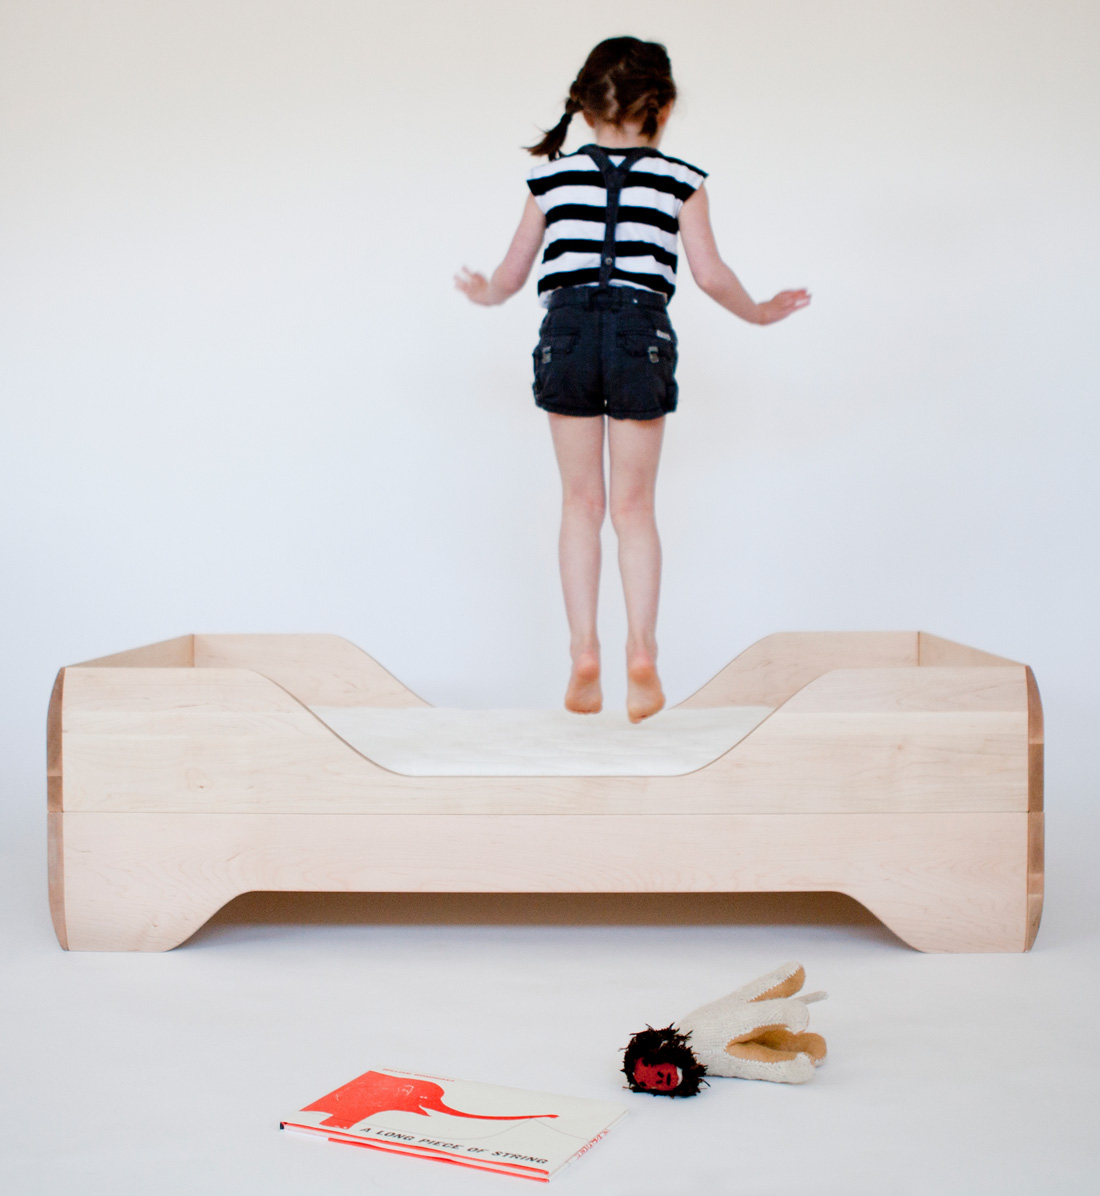 Echo Toddler Bed 'jump'